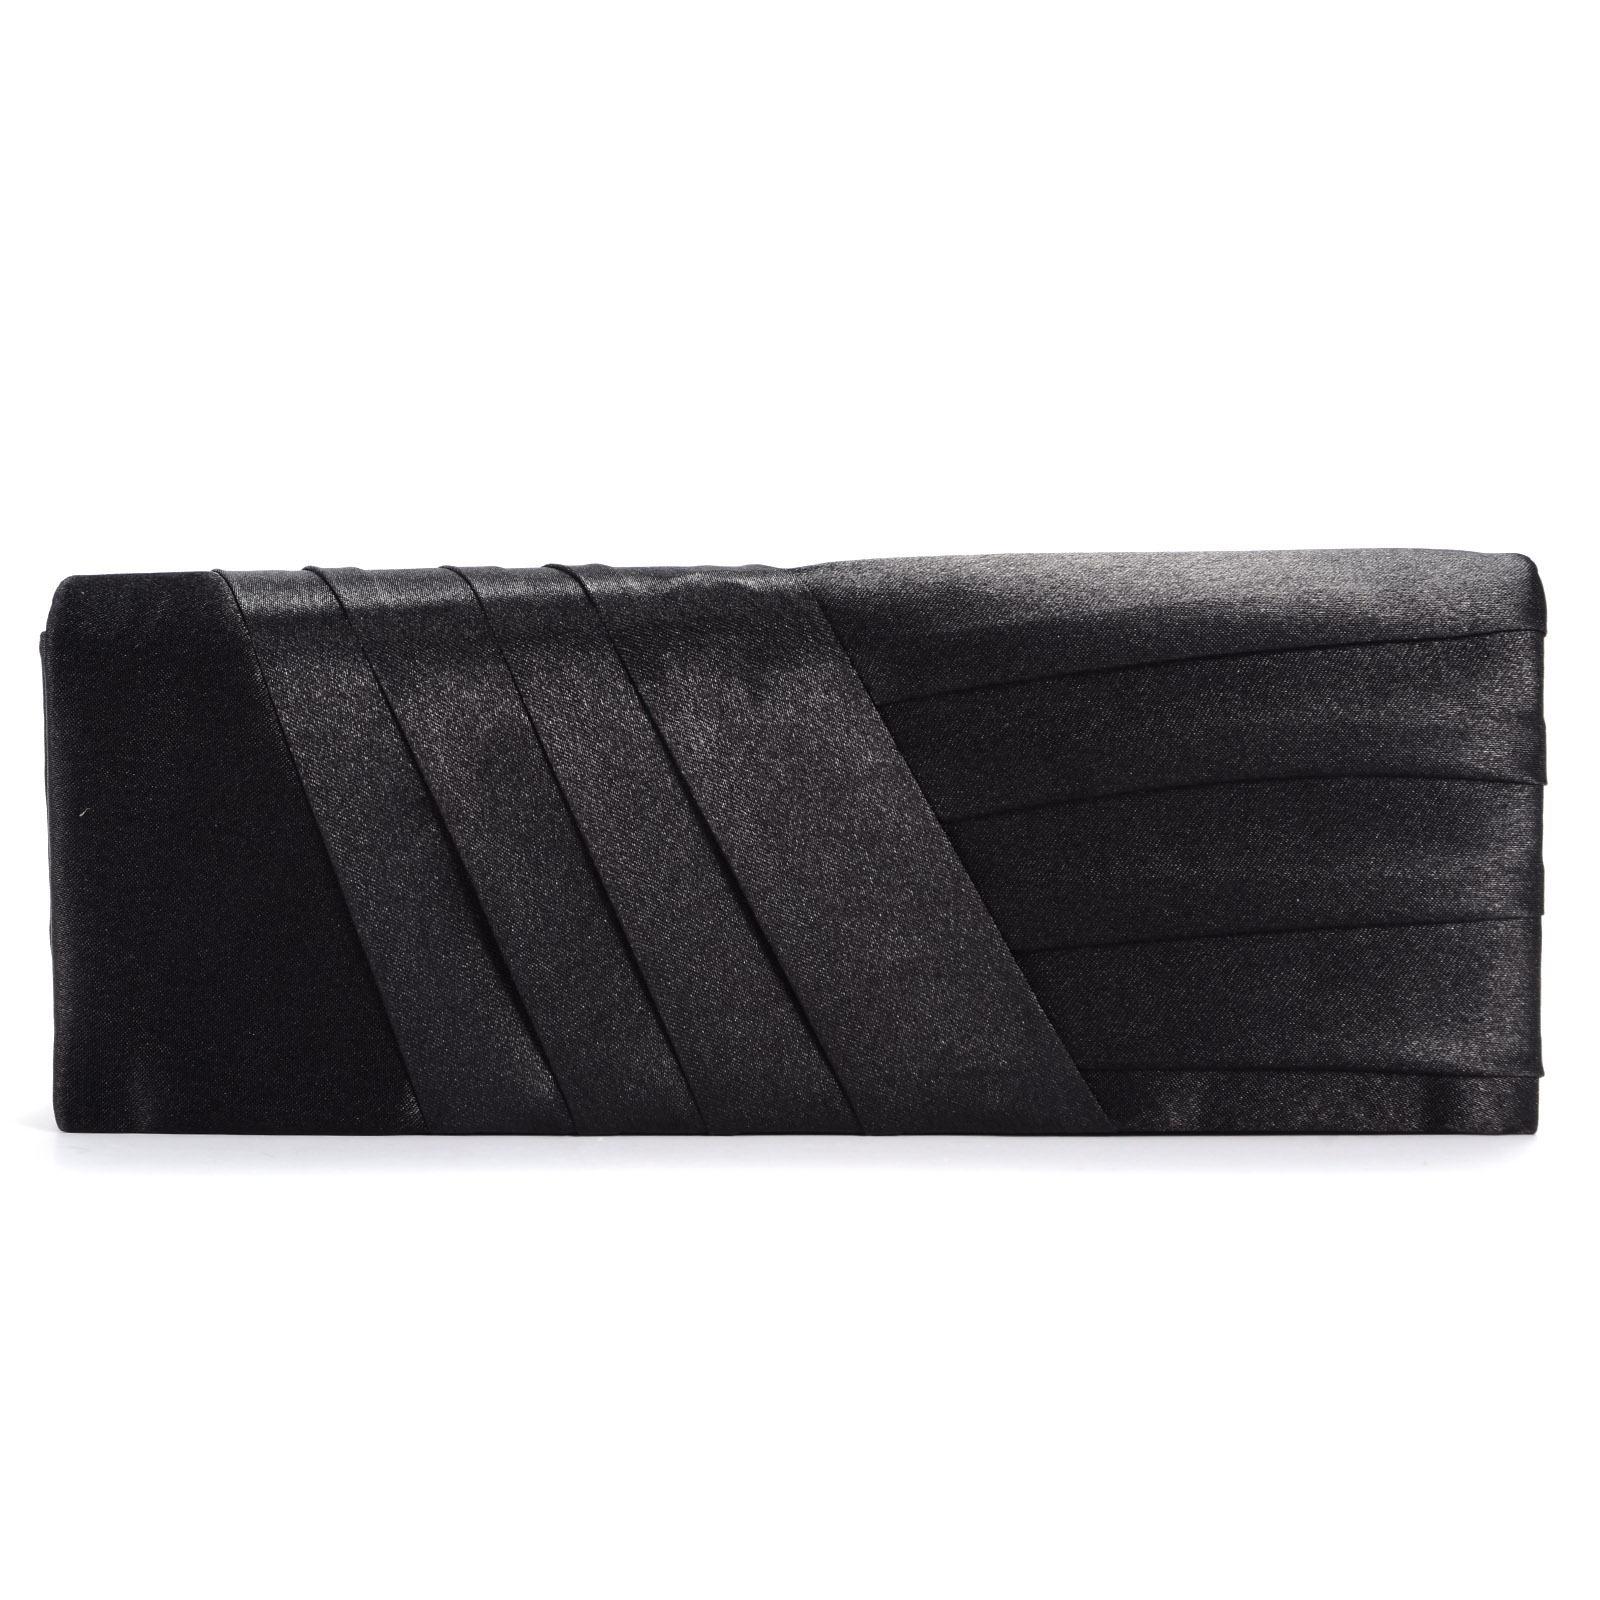 Black Satin Evening Prom Clutch Bag Bridal Wedding Handbag Purse | EBay